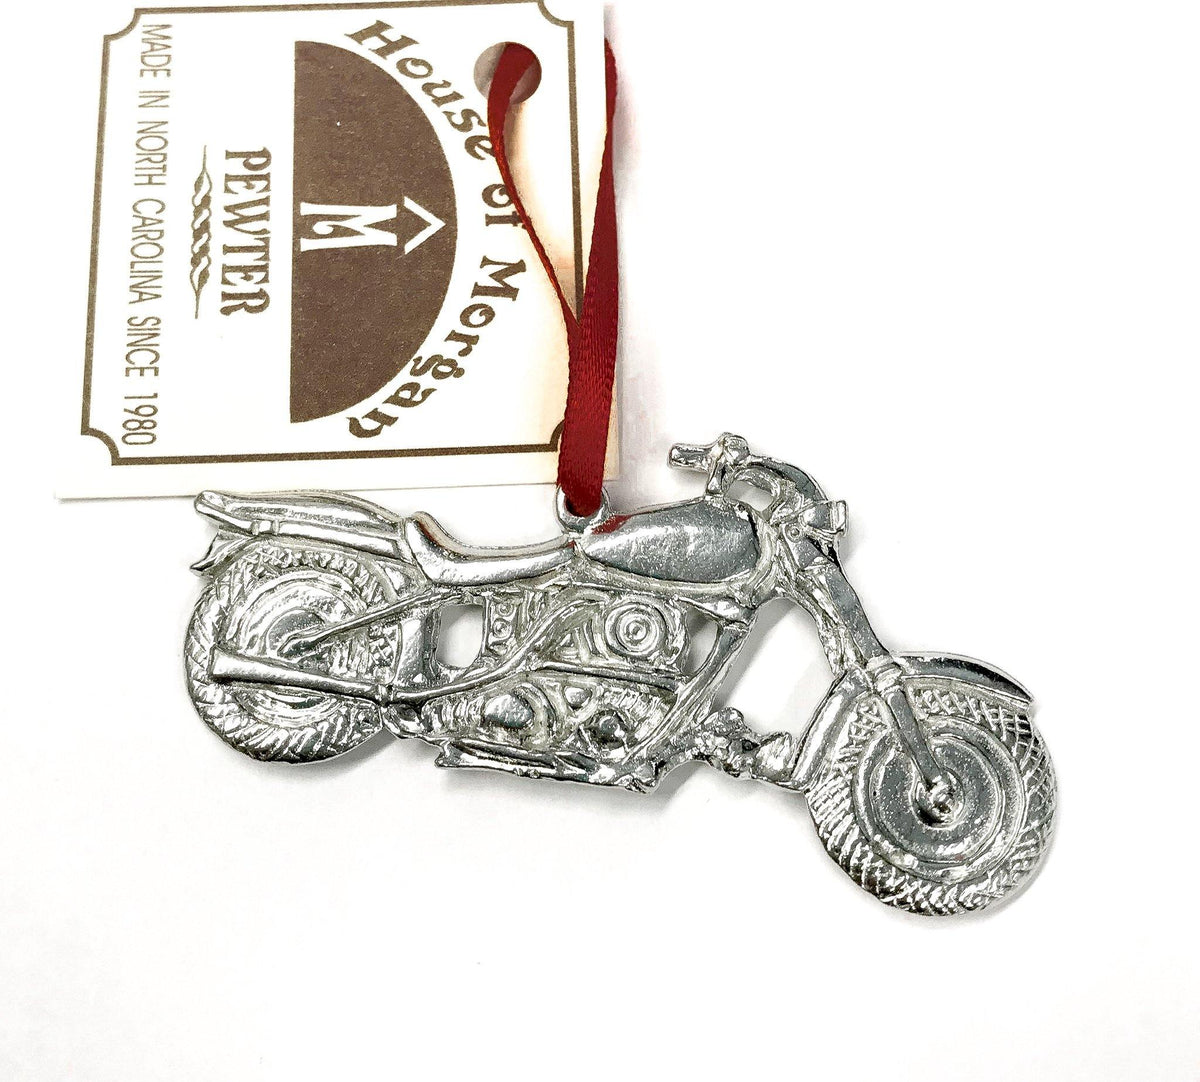 Handmade Biker Motorcycle Christmas Ornament Pewter - House of Morgan Pewter